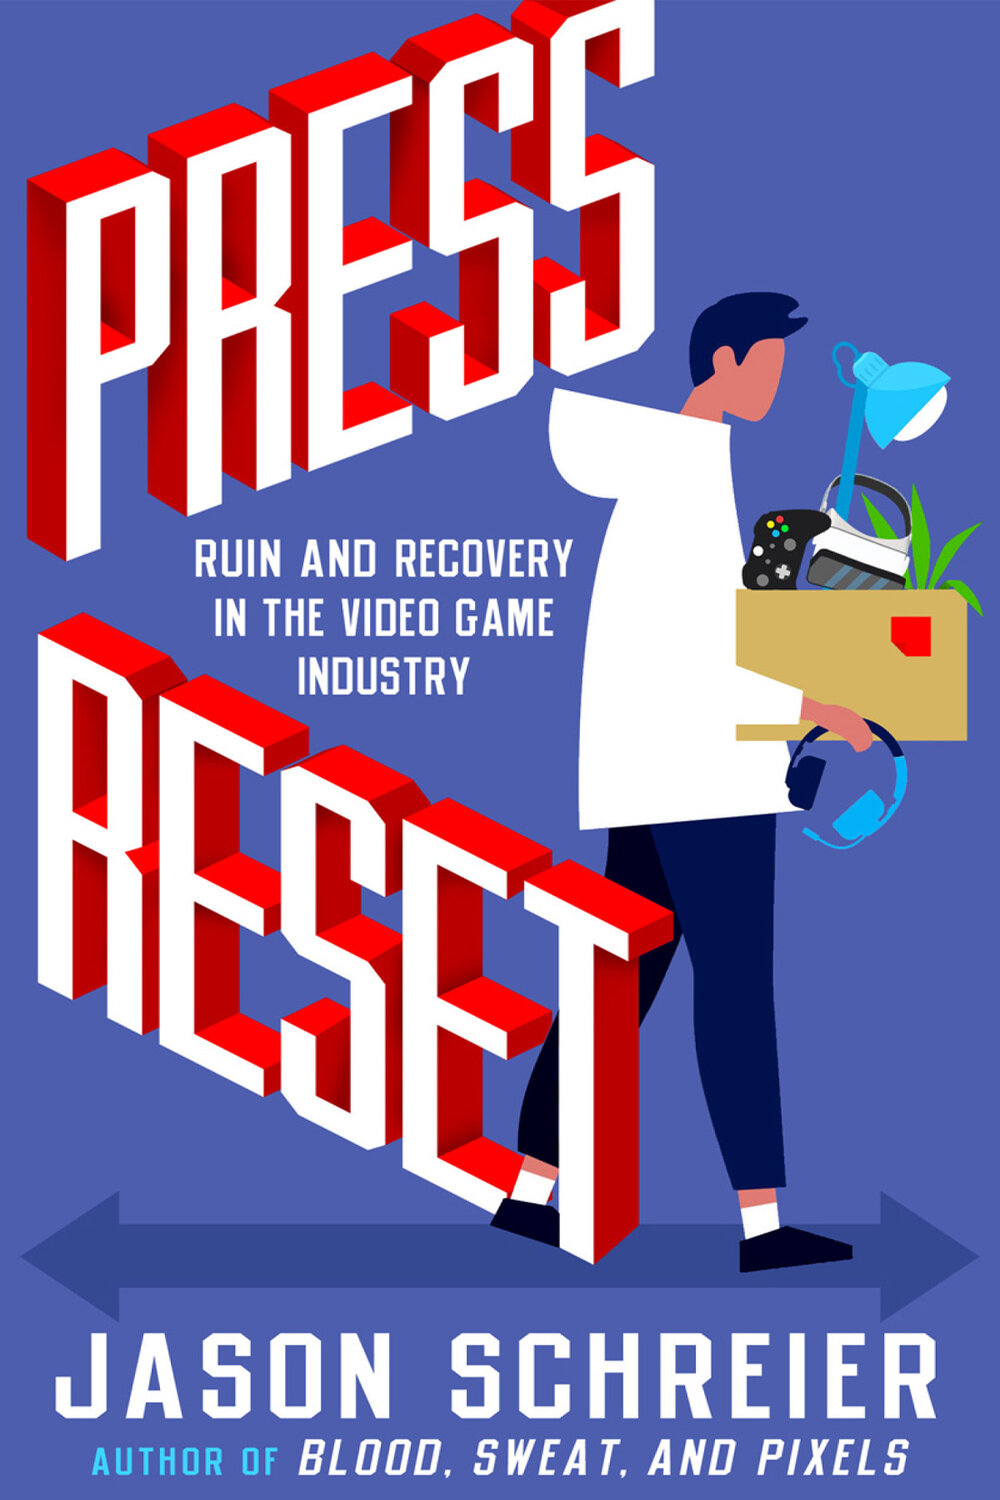 Press Reset: Ruin and Recovery in the Video Game Industry by Jason Schreier